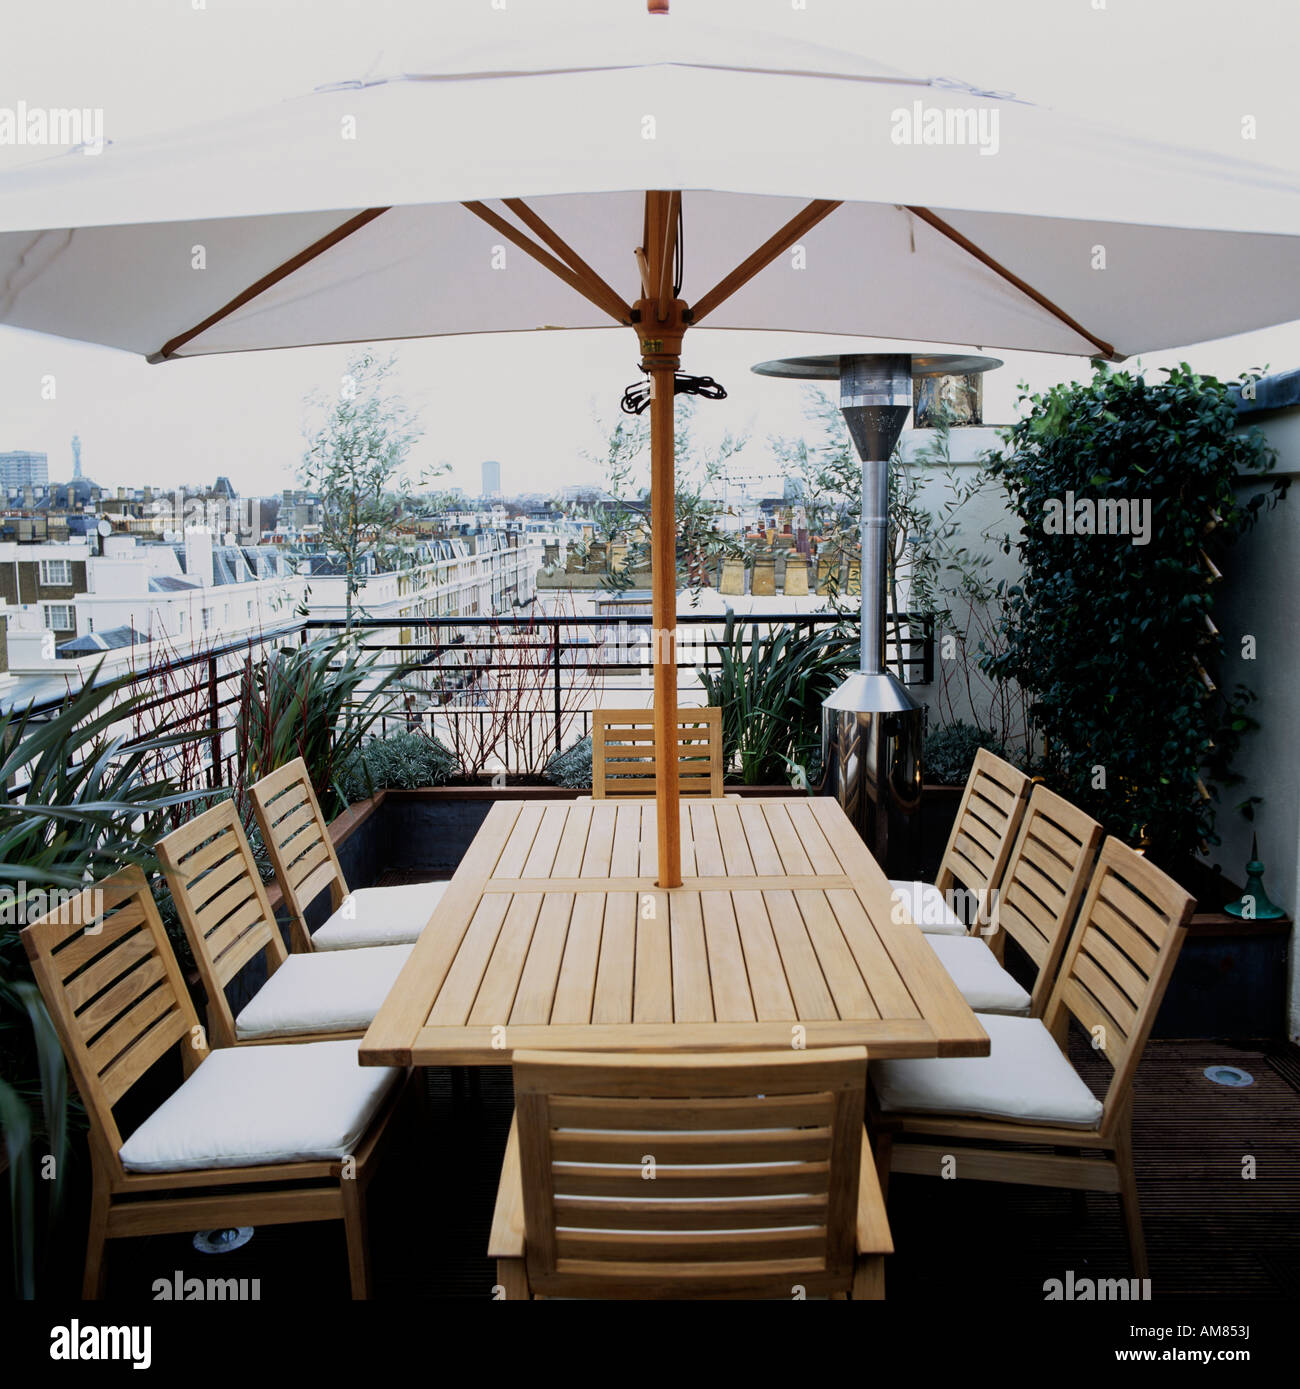 Roof Top Garden Terrace Garden Kitchen Garden Vegetable: Garden Table And Chairs With Parasol On Rooftop Terrace Of